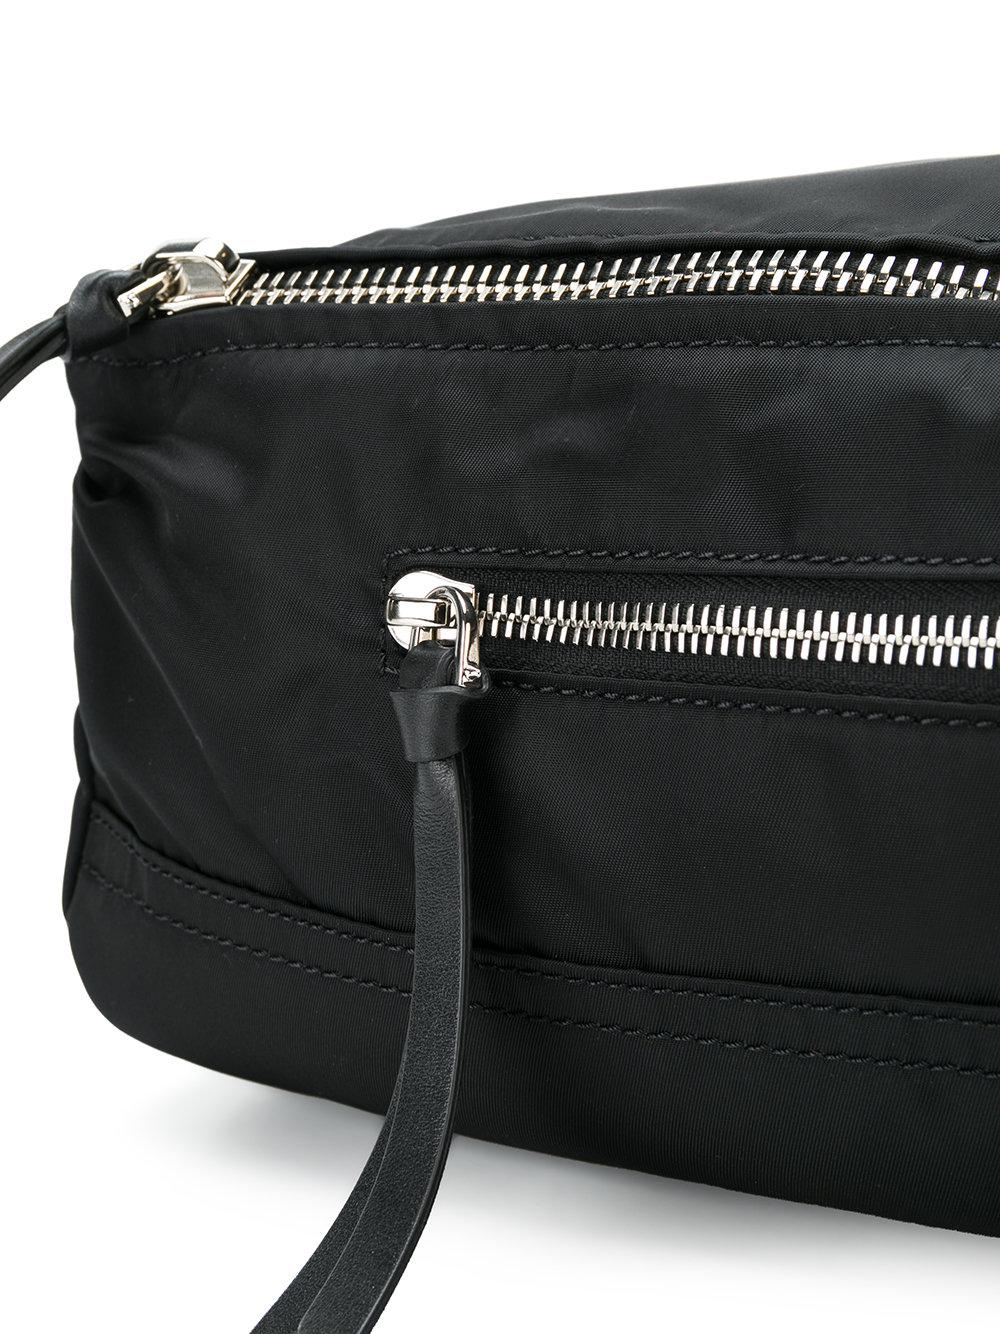 28de810c936 Lyst - Givenchy Pandora Belt Bag in Black for Men